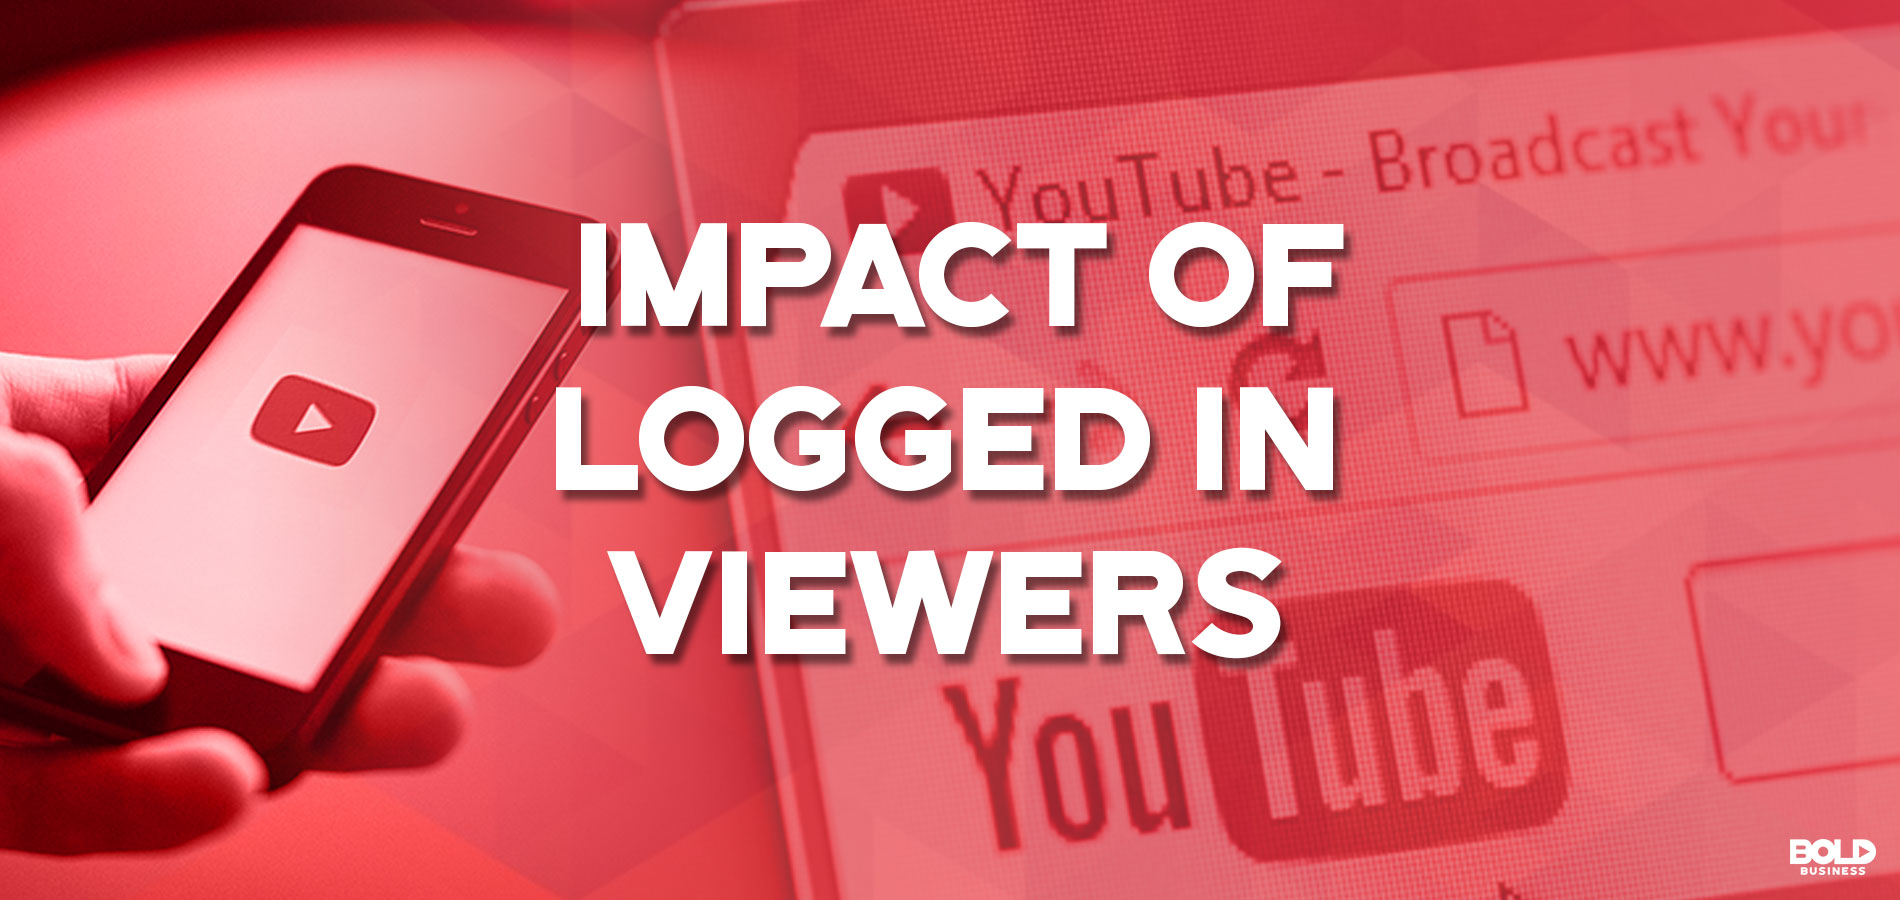 Impact of YouTube Logged In Viewers